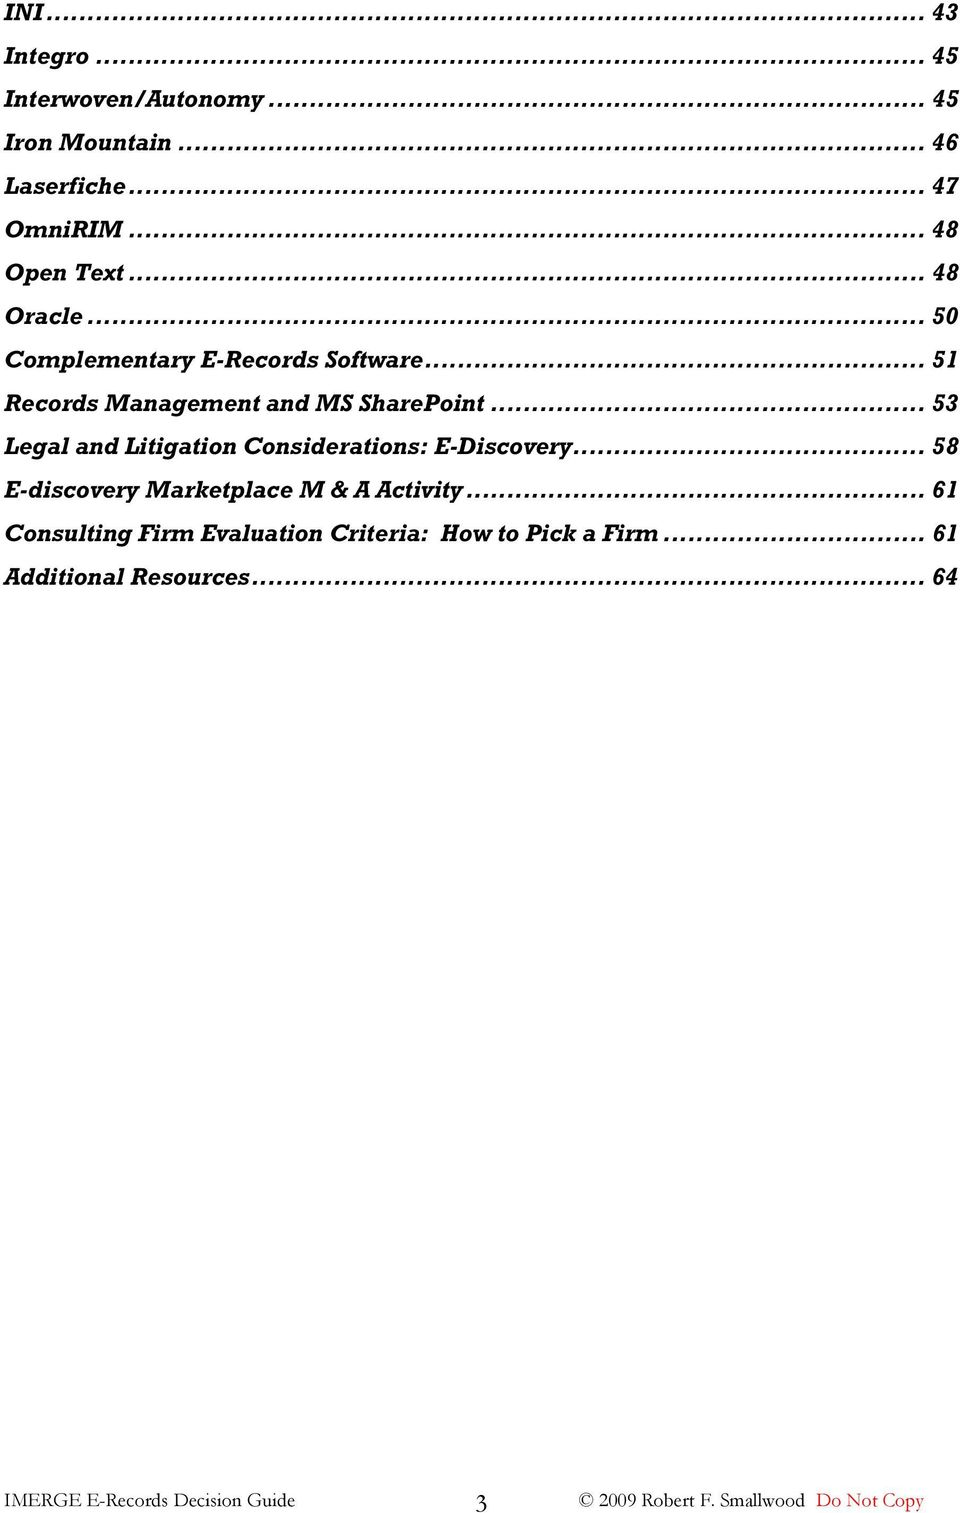 .. 51 Records Management and MS SharePoint... 53 Legal and Litigation Considerations: E-Discovery.